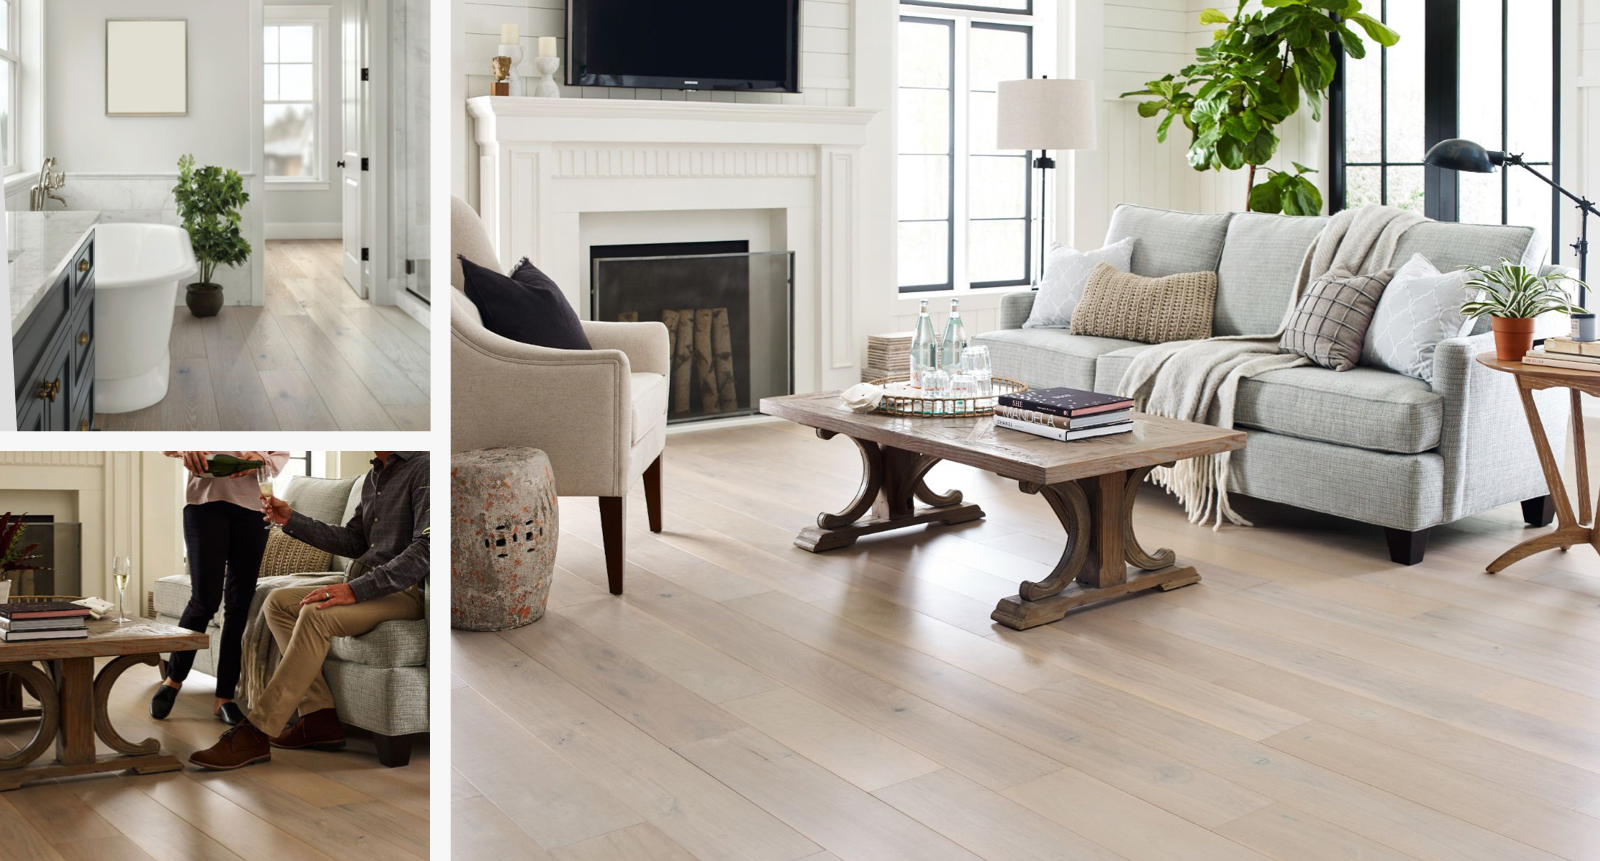 Floorte waterproof hardwood flooring for your home | Tuf Flooring LLC